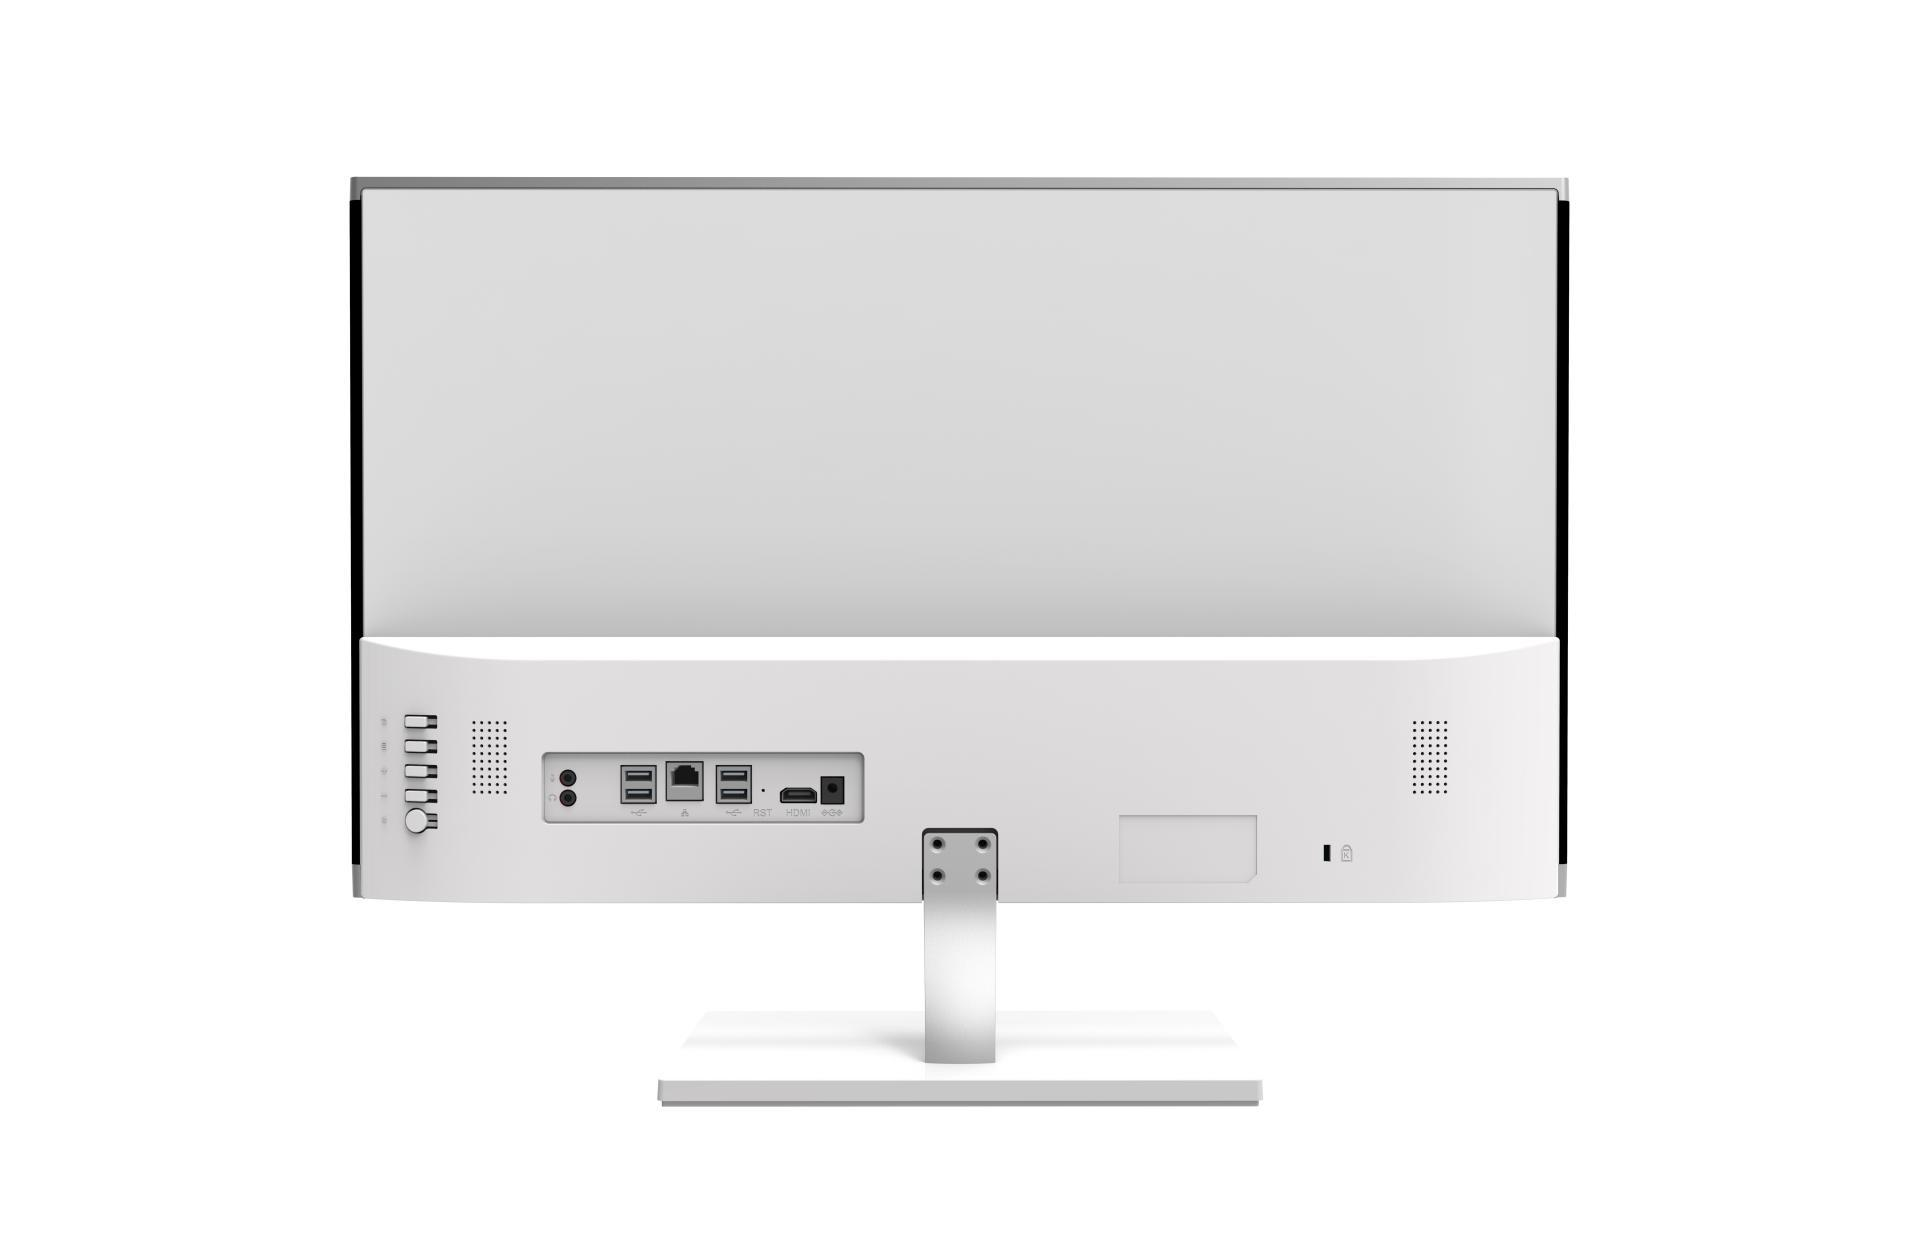 AOC Mars All-in-One PC